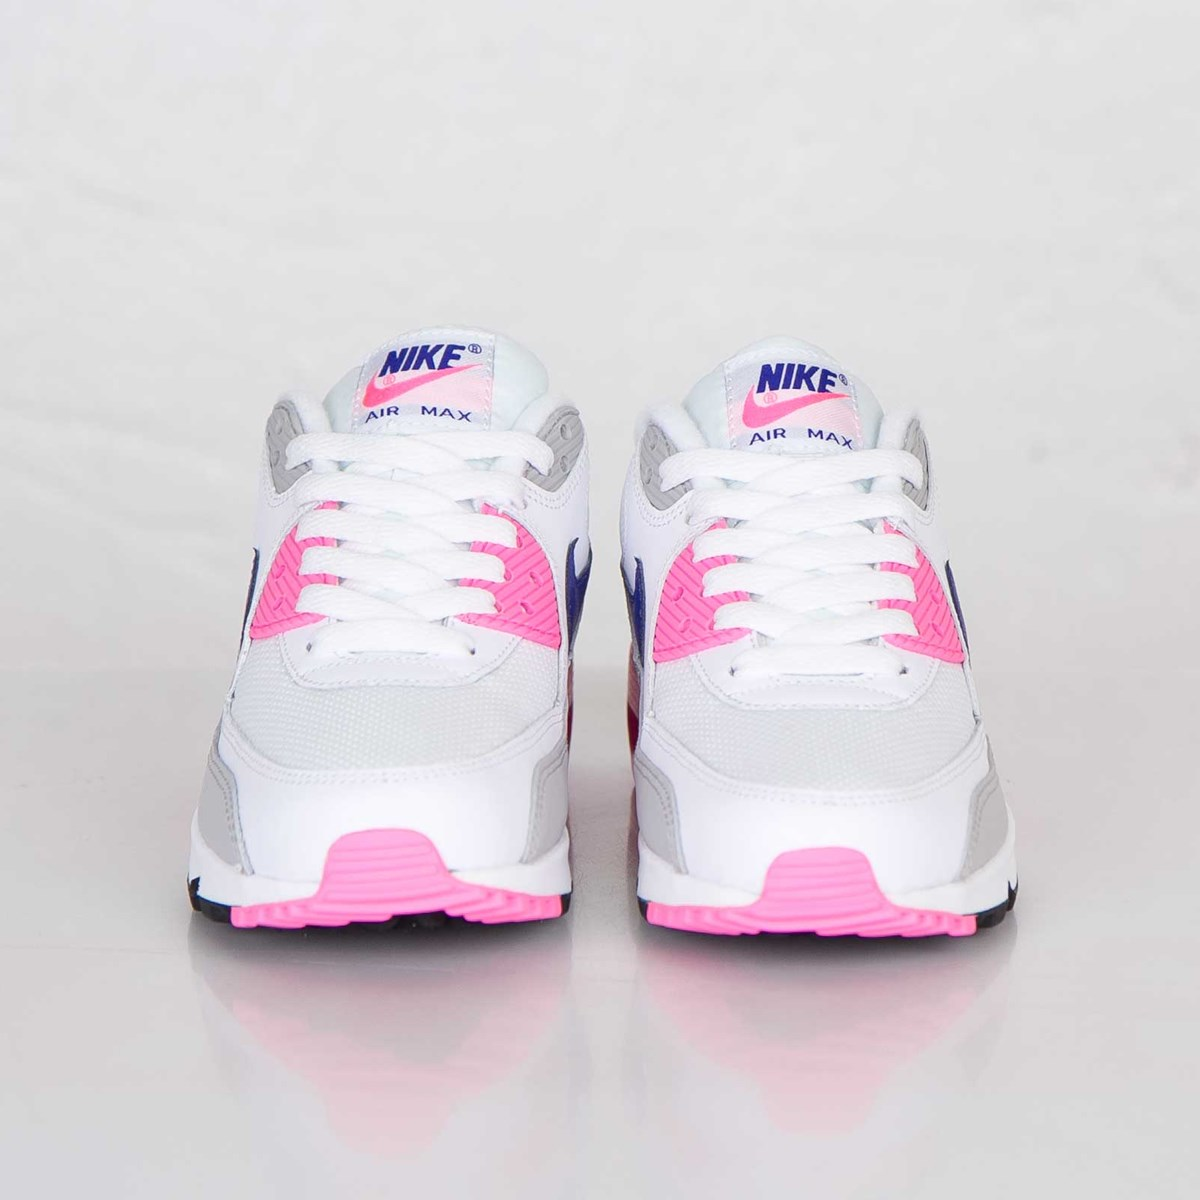 81565ff01919 Nike Wmns Air Max 90 Essential - 616730-104 - Sneakersnstuff ...